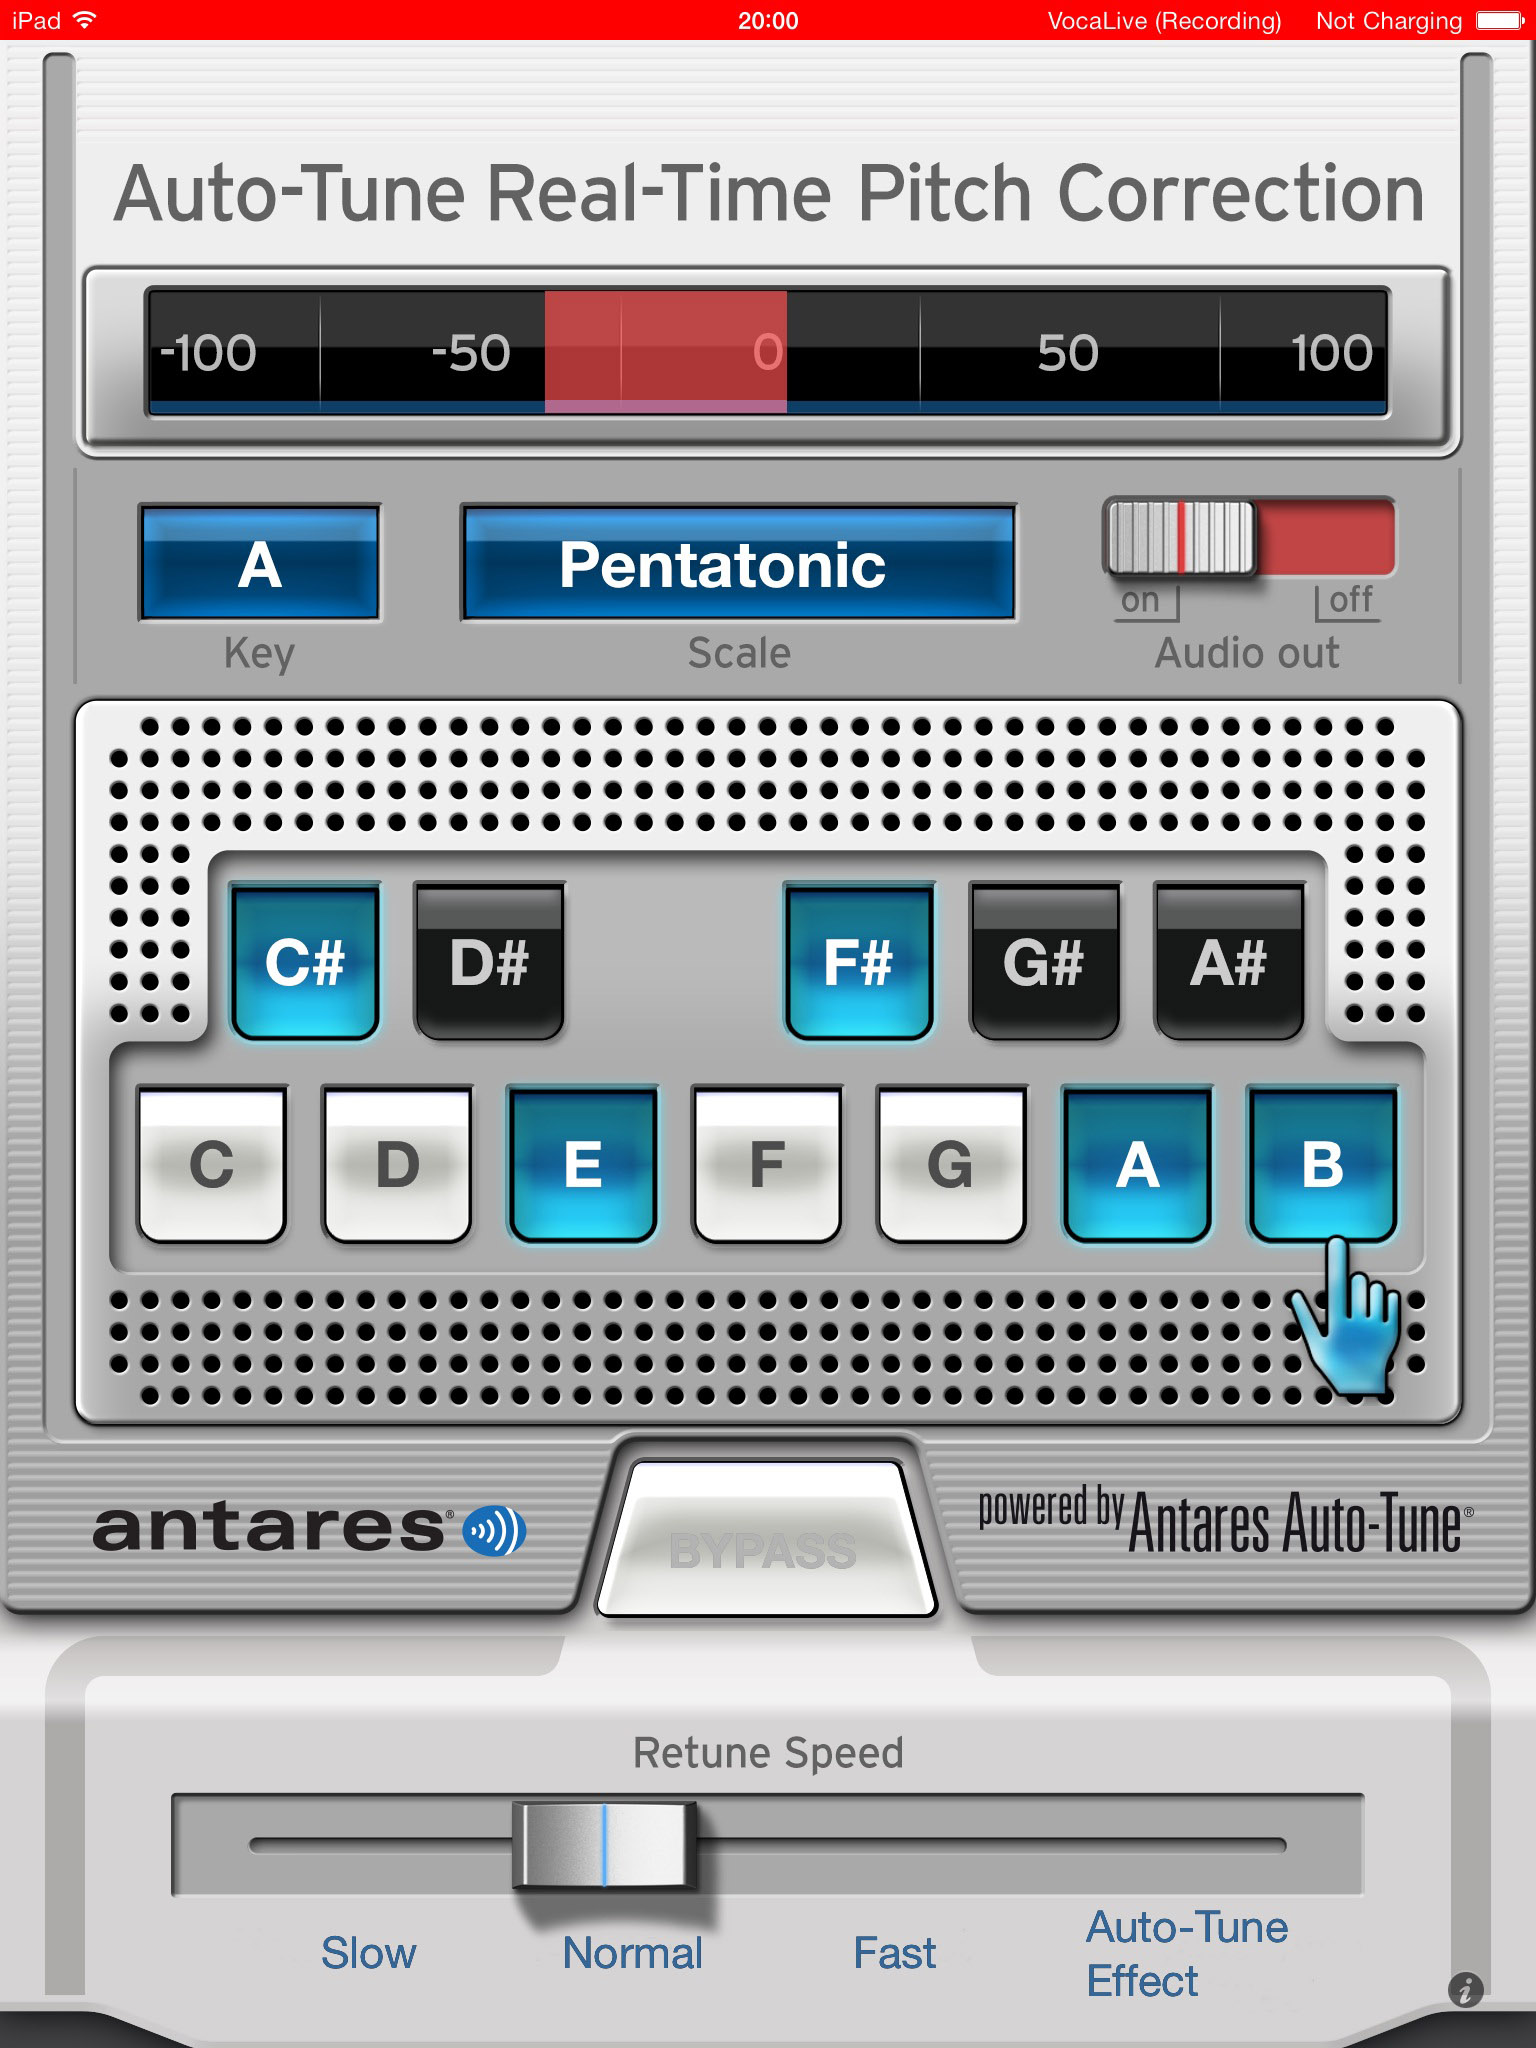 singaling review ios vocal processing app with a friendly face